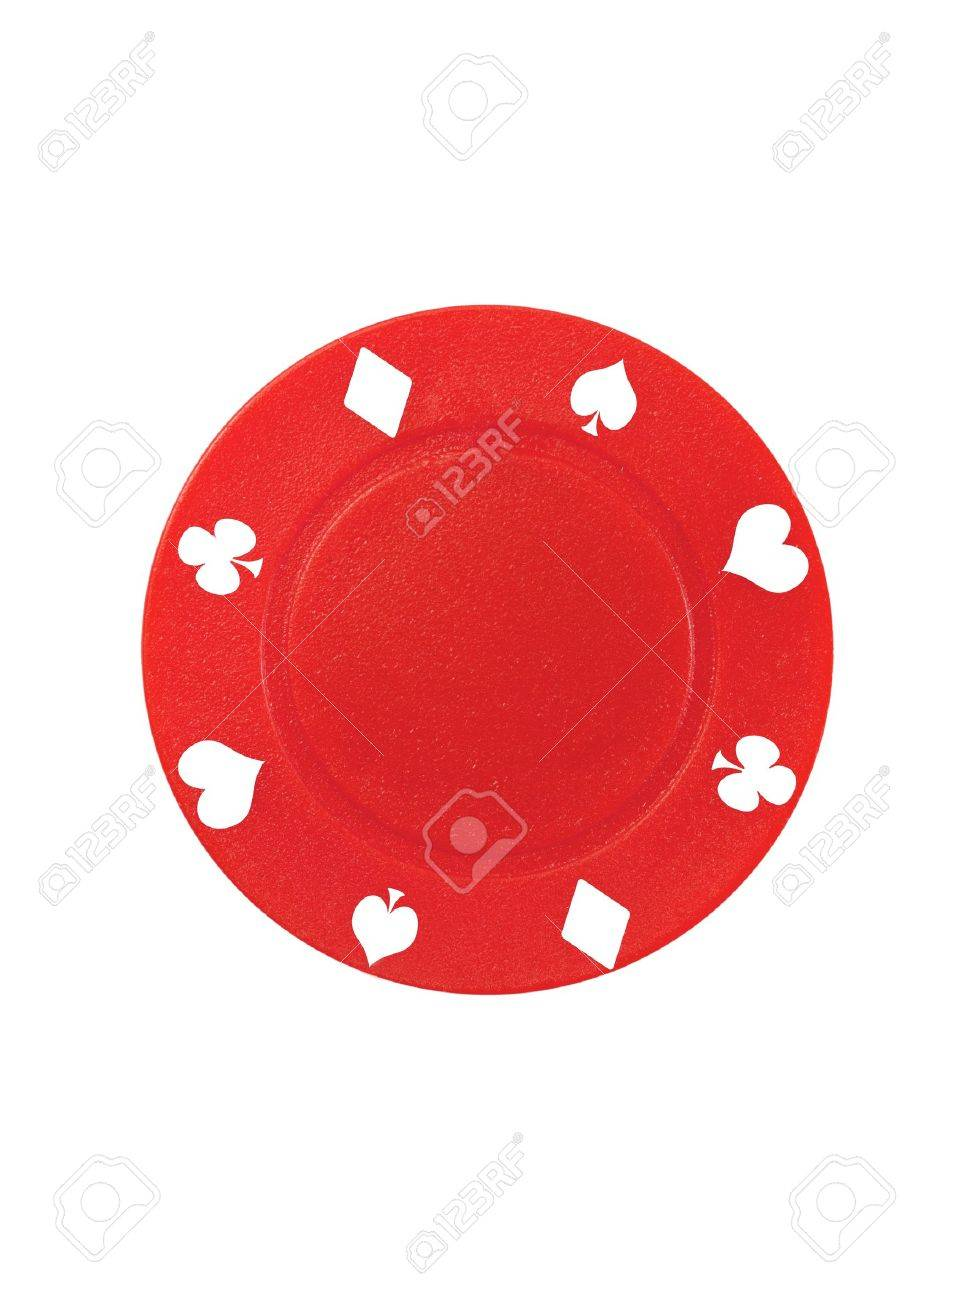 A conceptual gambling image with assorted gambling equipment Stock Photo - 12083104